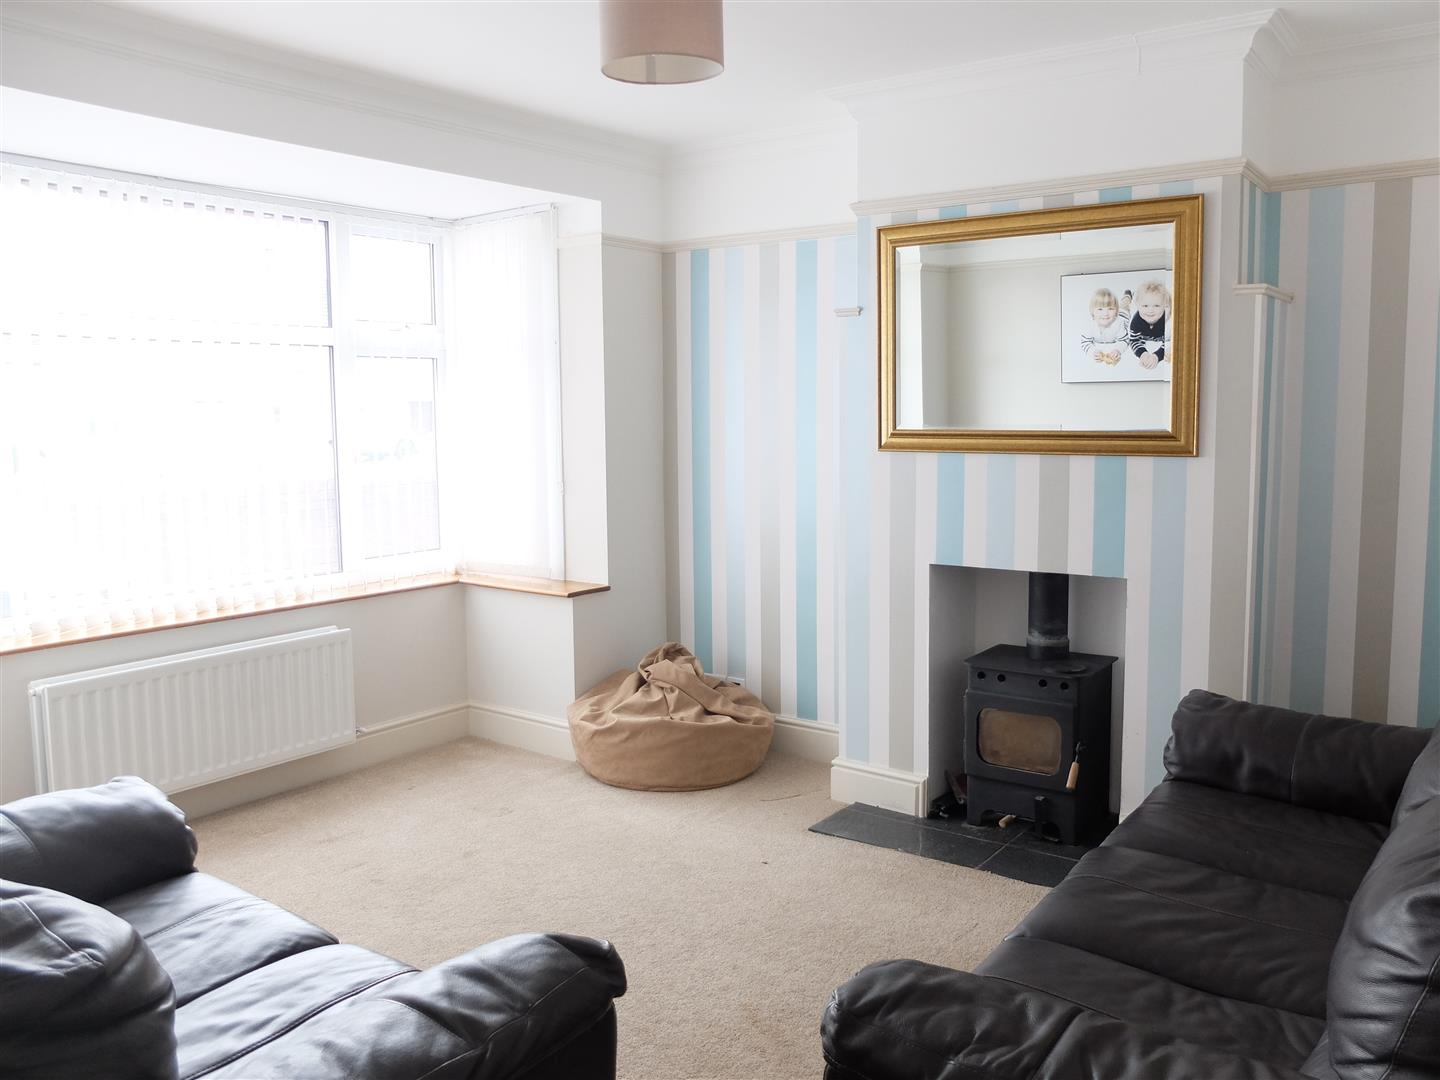 3 Bedrooms House - Semi-Detached For Sale 218 Wigton Road Carlisle 180,000